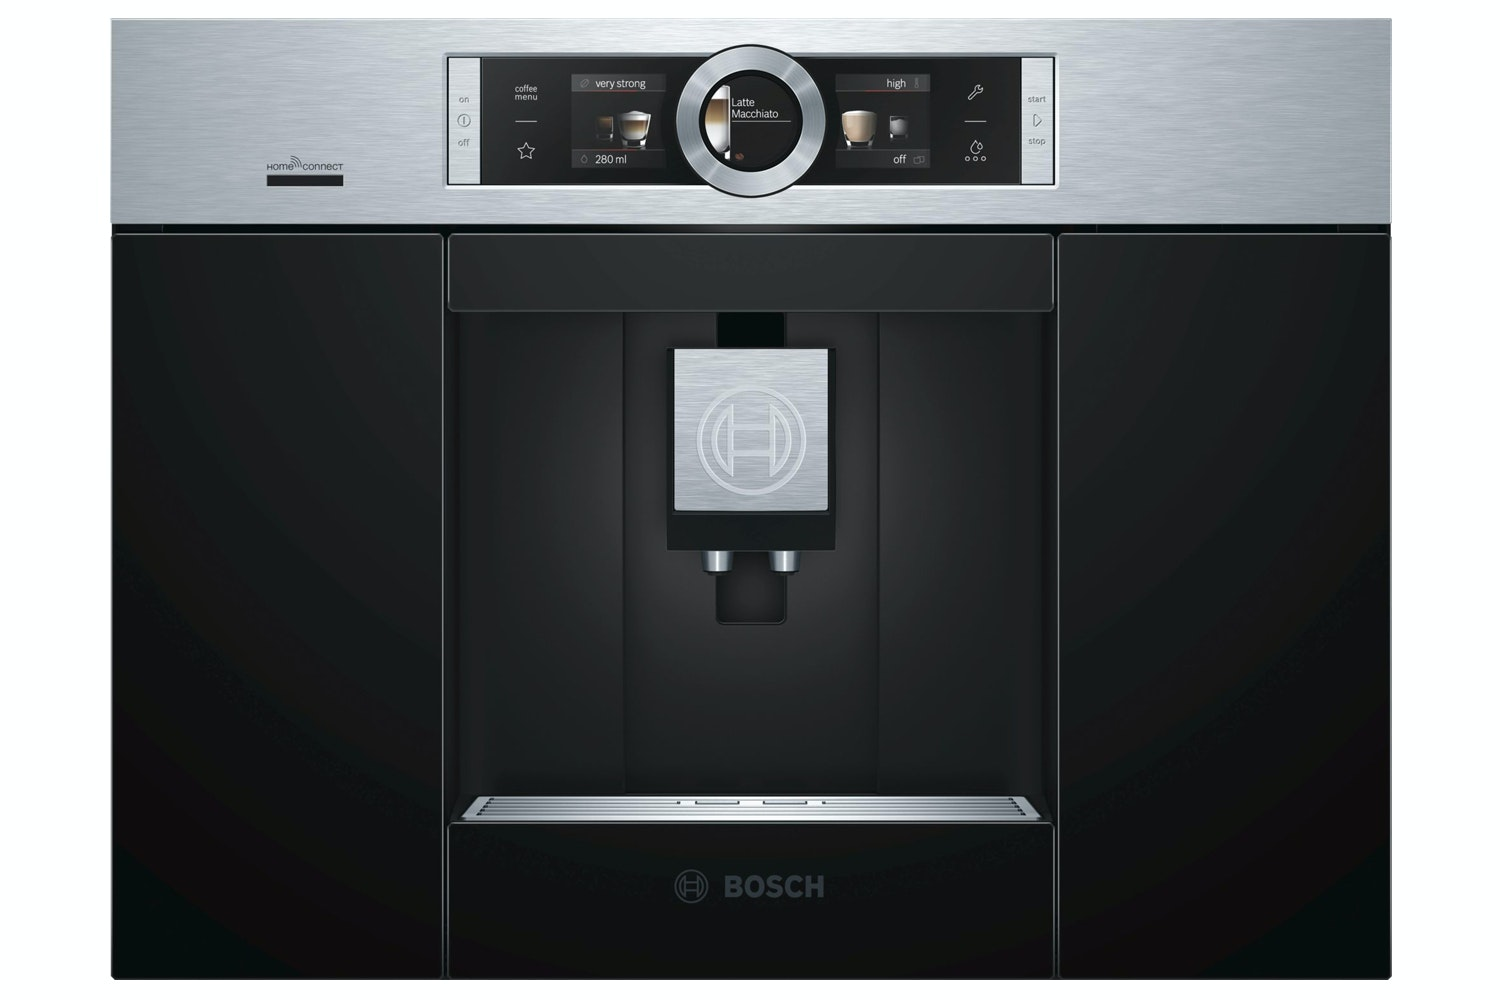 Bosch Fully Automatic Bean 2 Cup Coffee Machine | Black